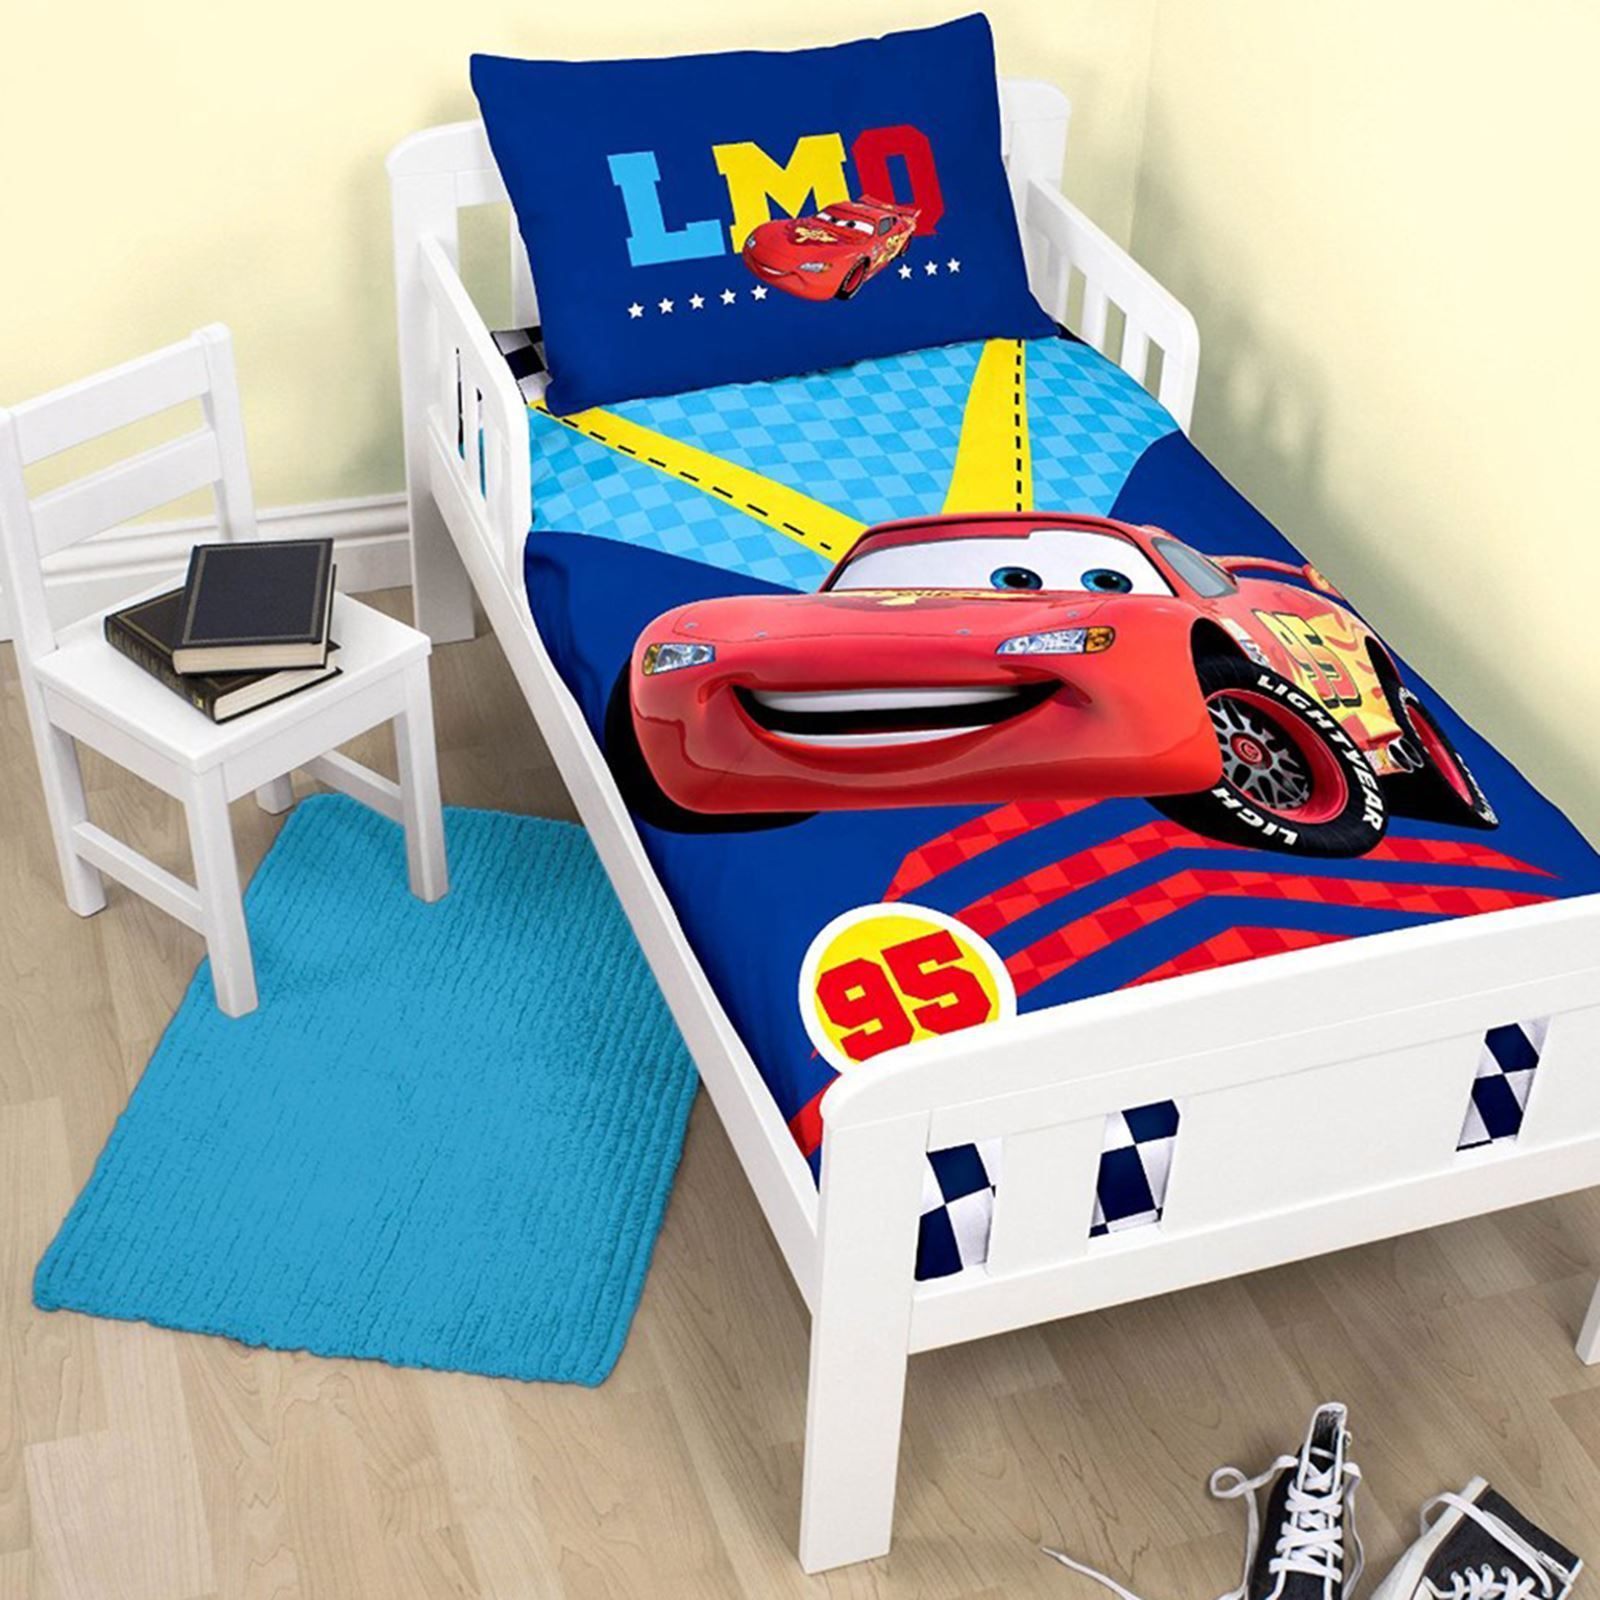 new disney cars piston junior size cot bed toddler duvet cover set